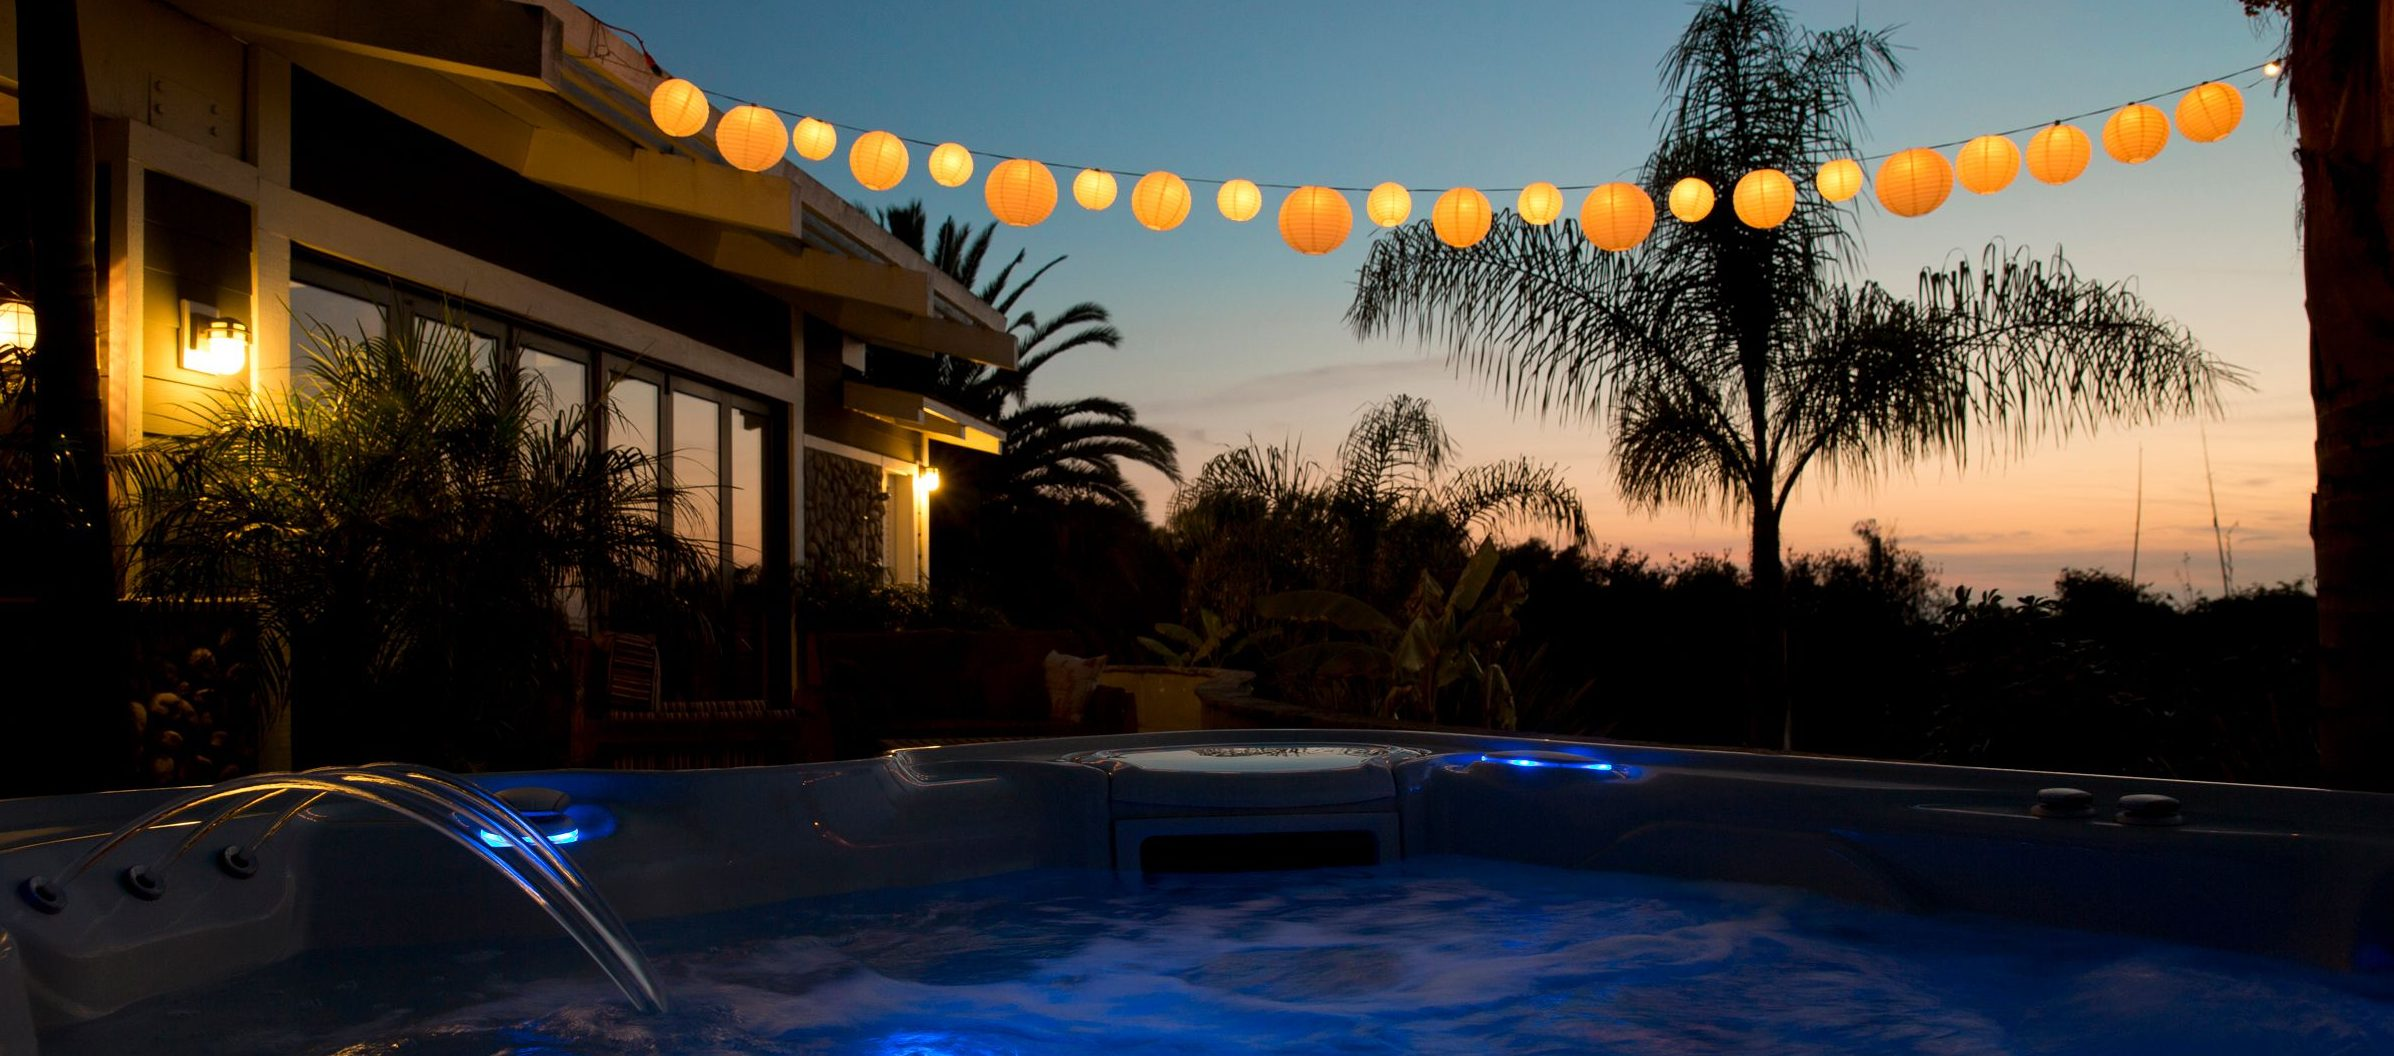 3 Ways To Dress up Your Hot Tub This Halloween